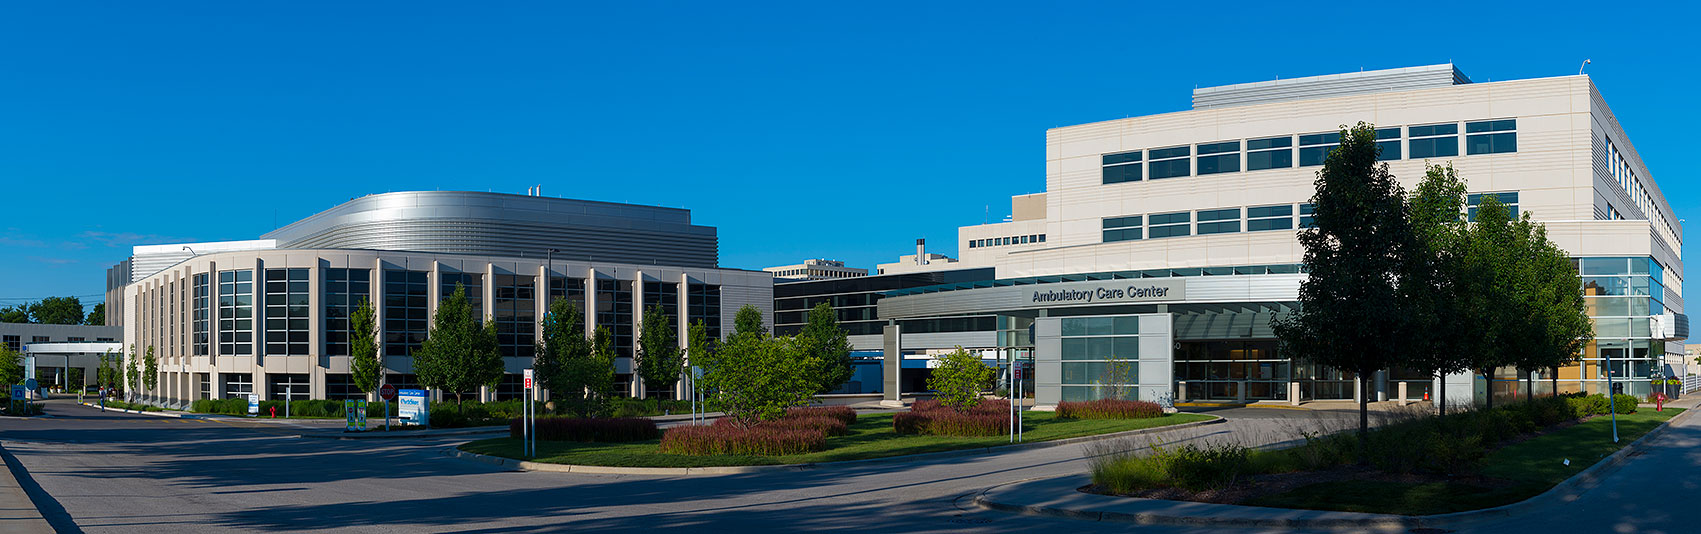 NorthShore Skokie Hospital